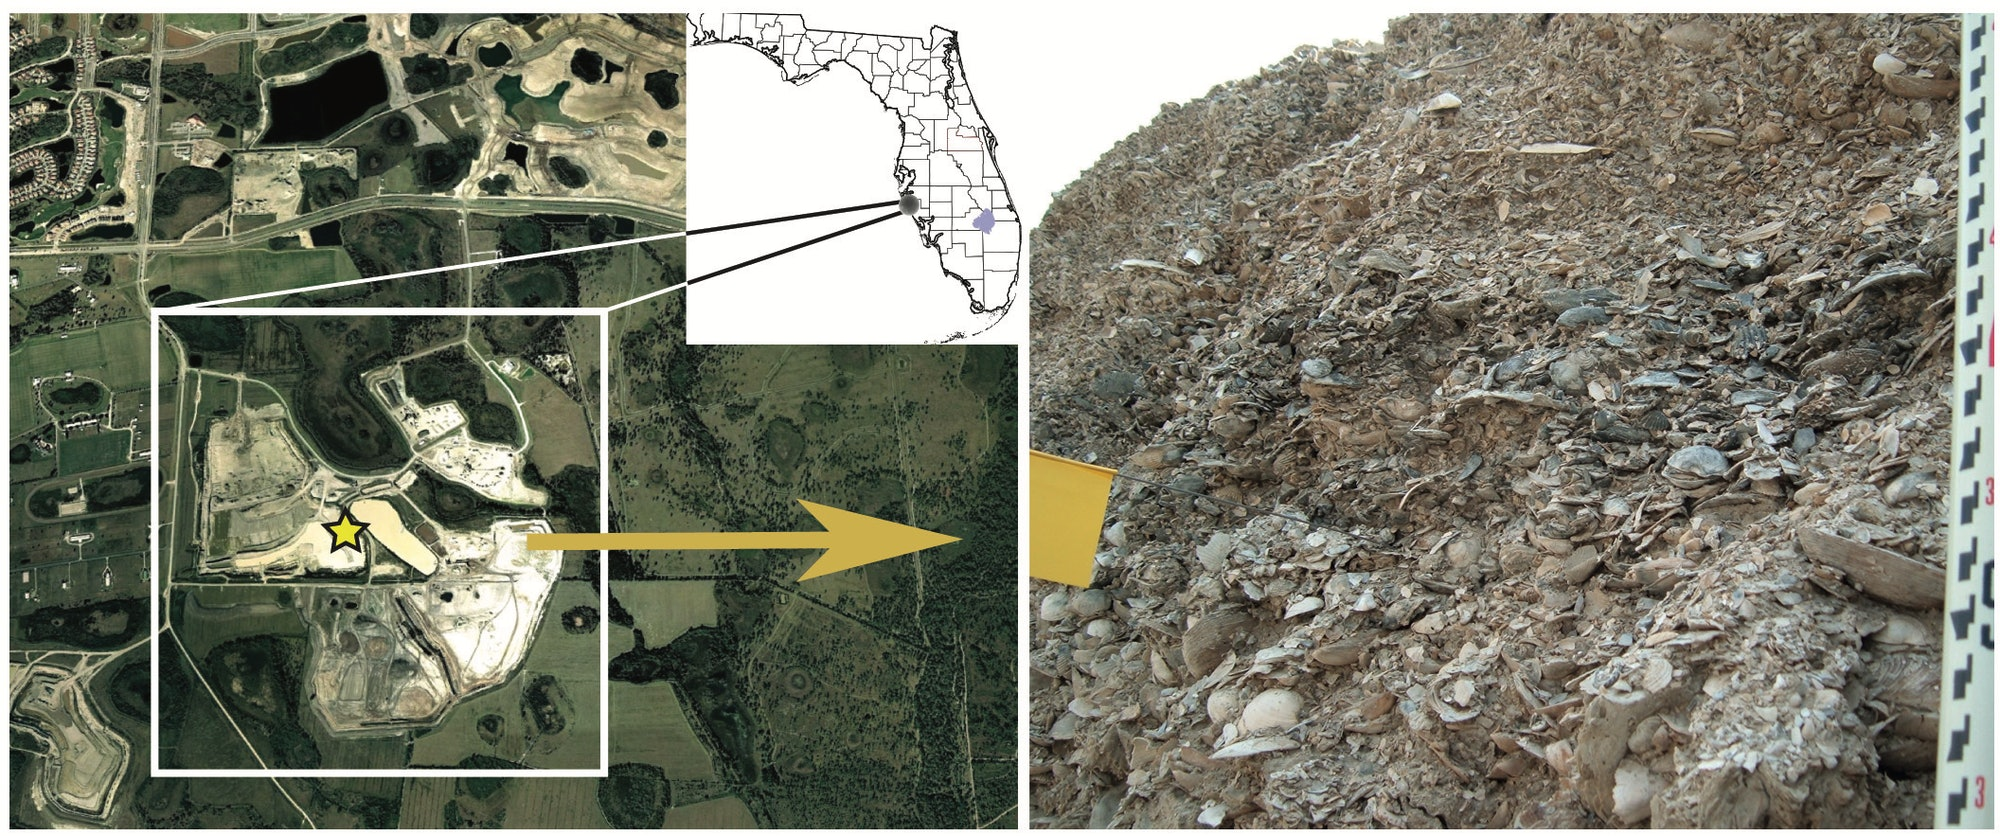 Meyer was looking for fossils in a quarry near Sarasota, Florida. The site is now a ranch.